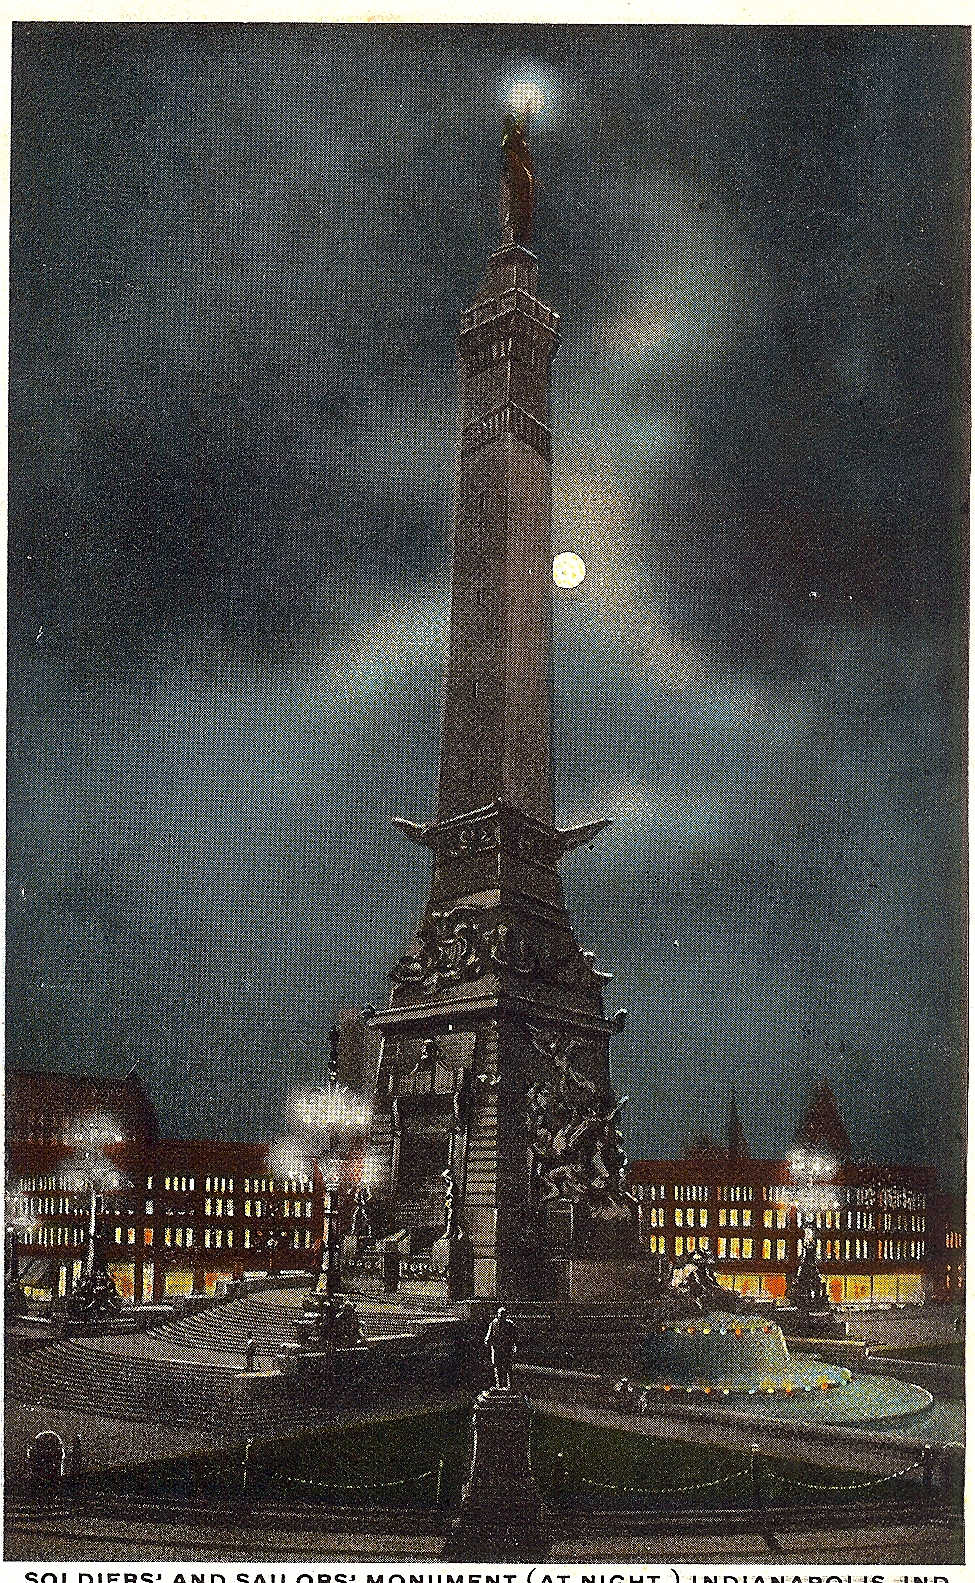 Penny Post: The Monument at Night